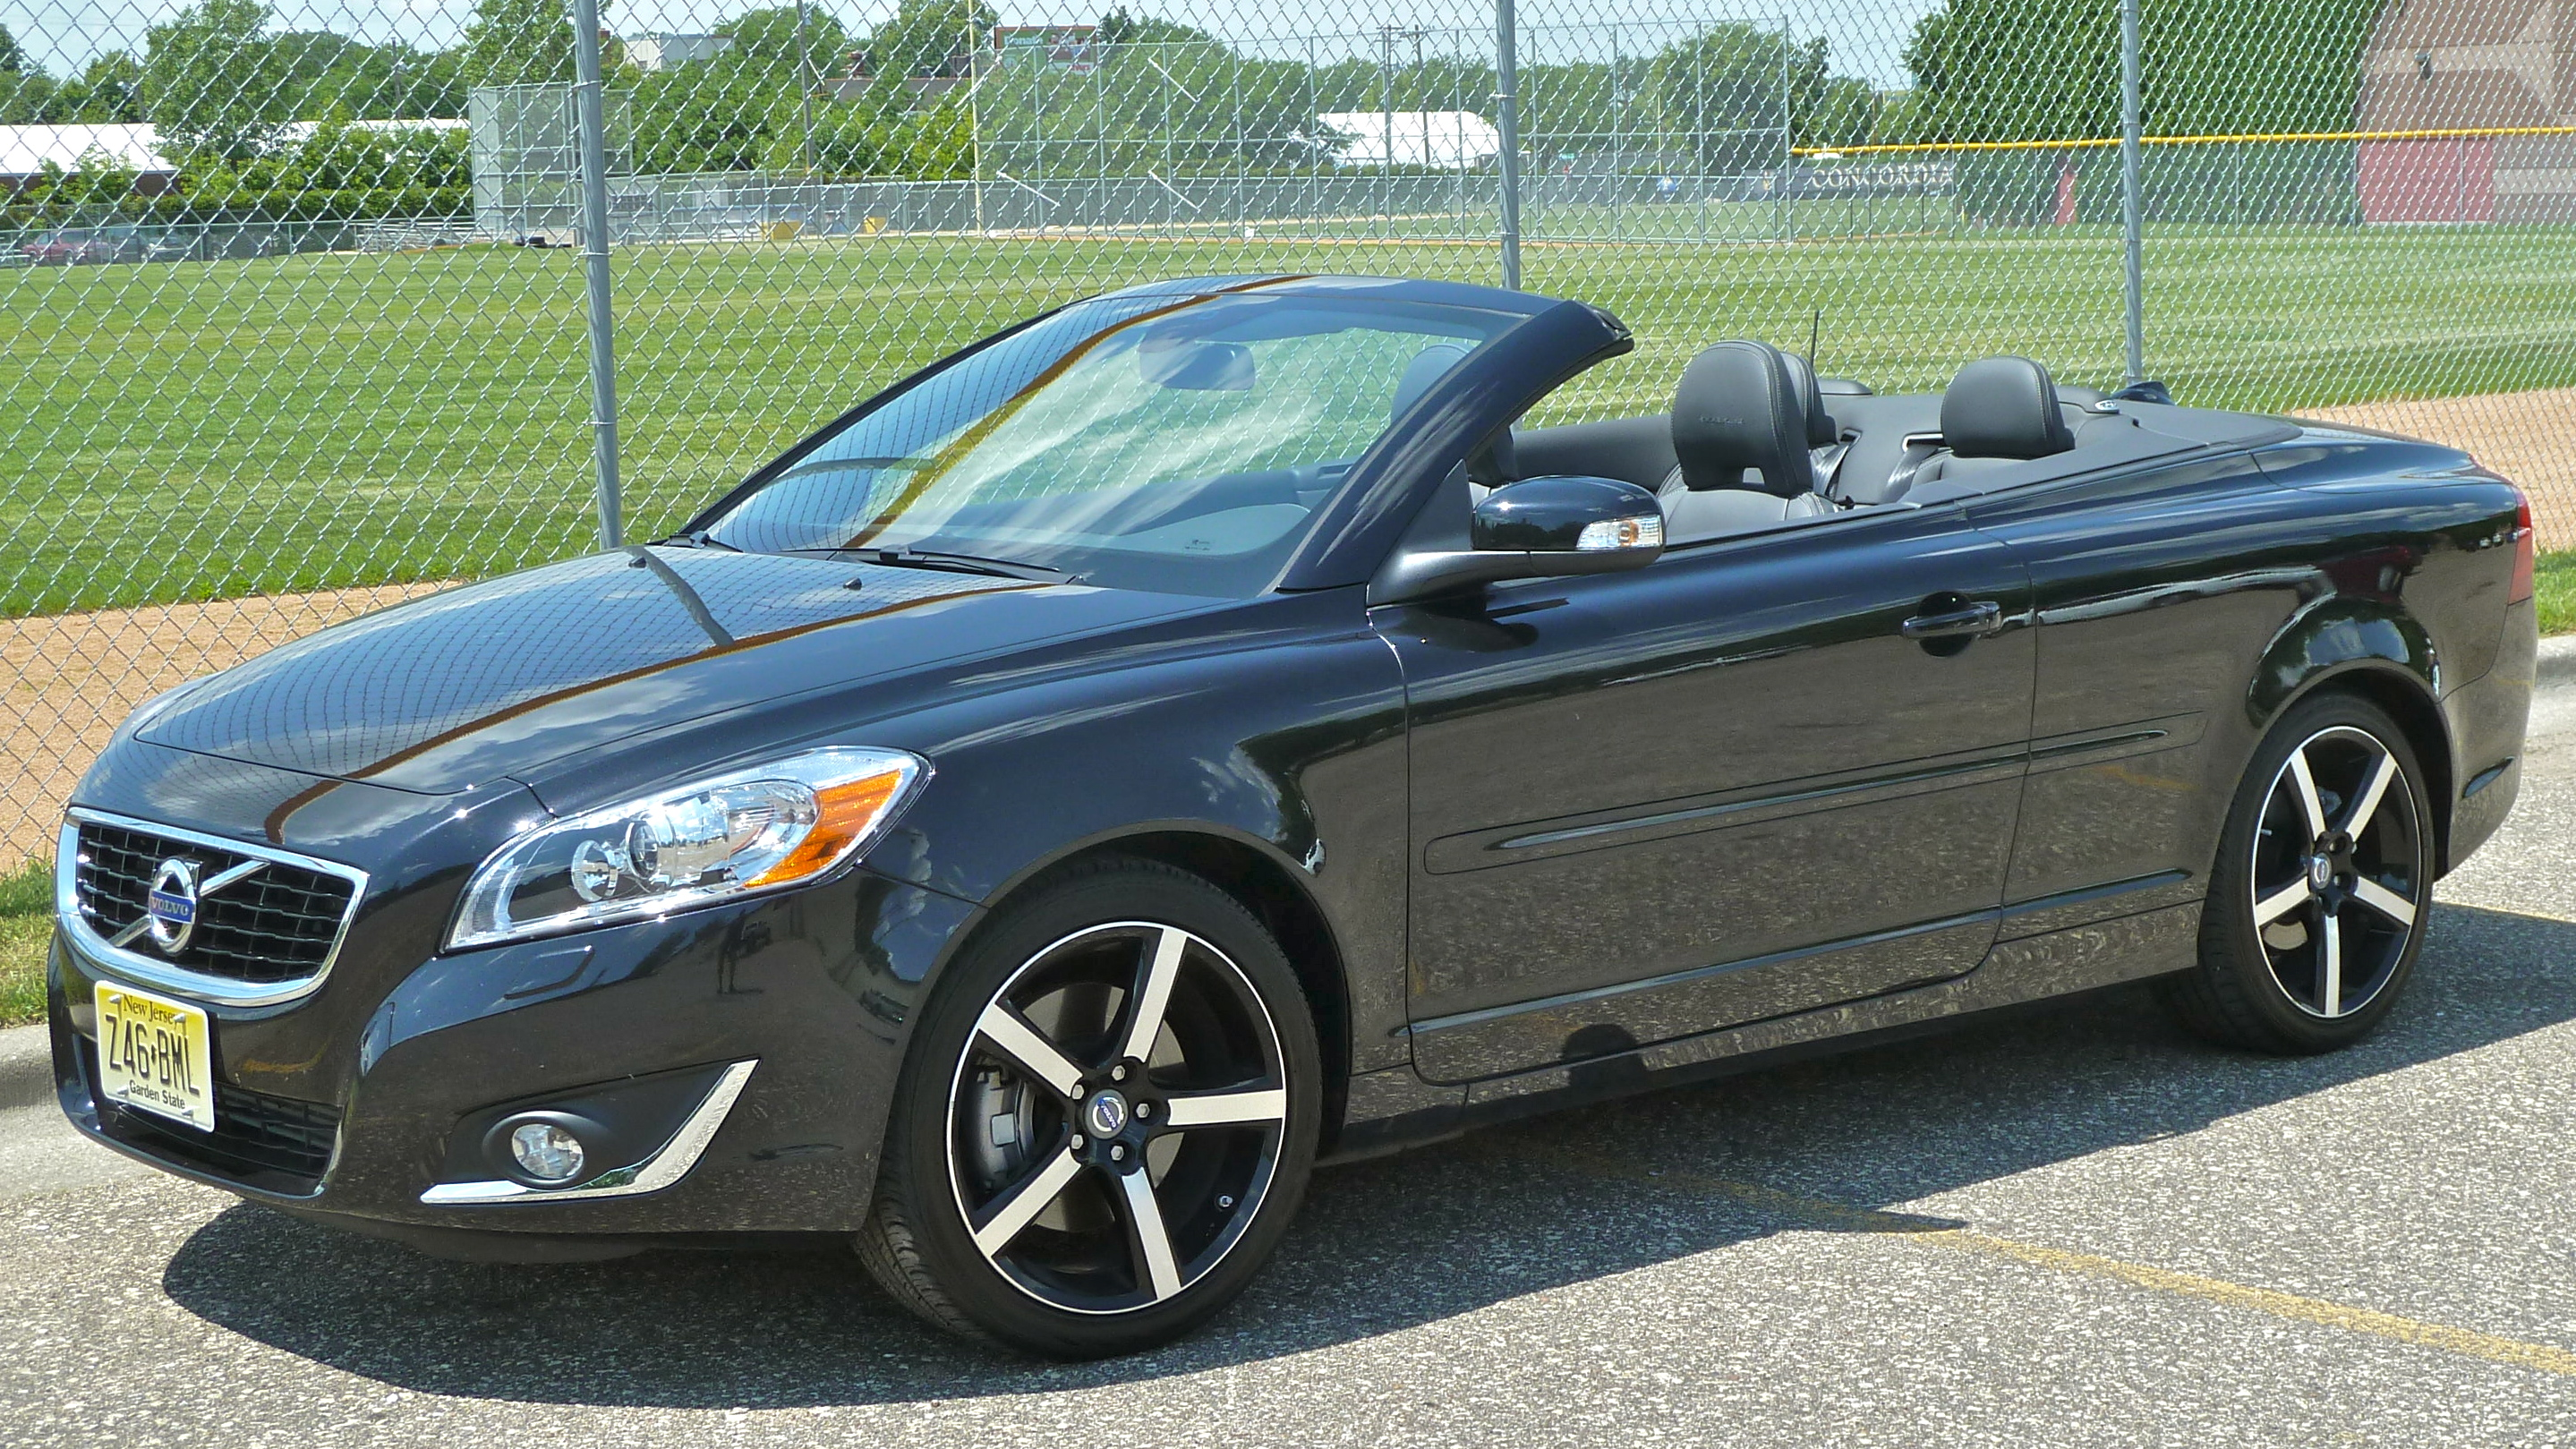 scottis for volvo of fl sale specifications details used sarasota this vid convertible vehicle